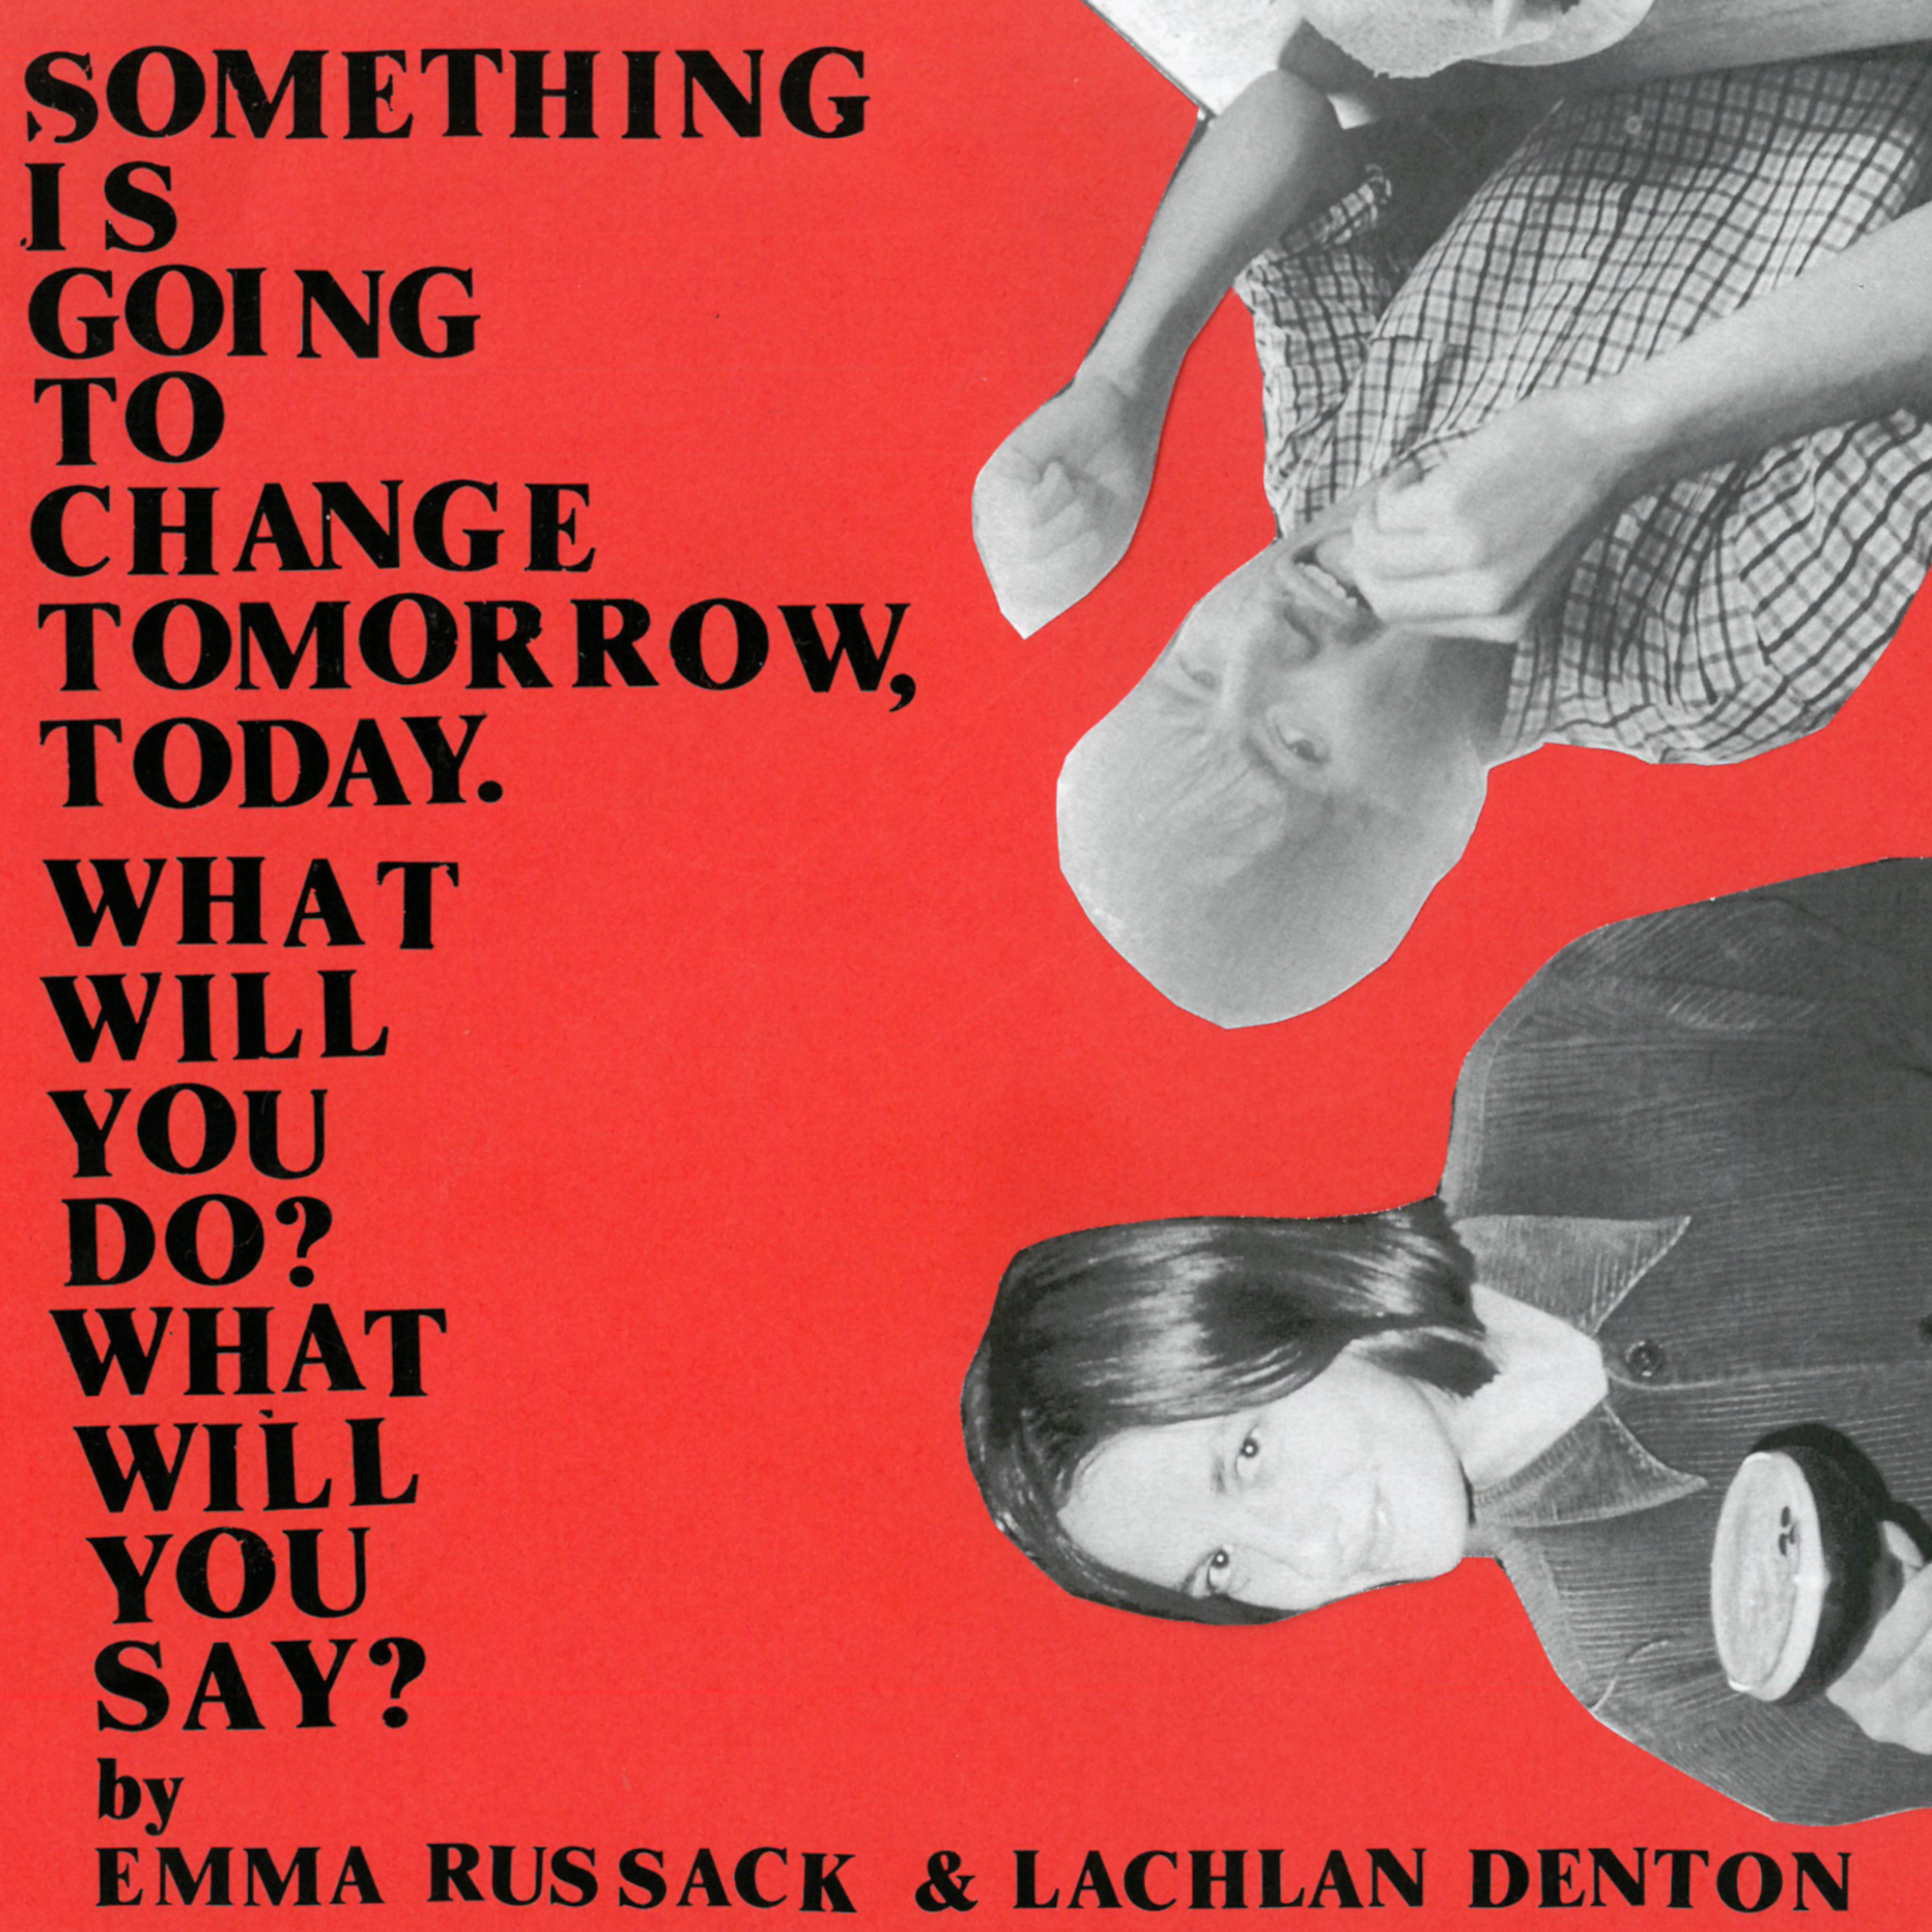 Emma Russack & Lachlan Denton - Something is Going to Change Tomorrow, Today. What Will You Do? What Will You Say?